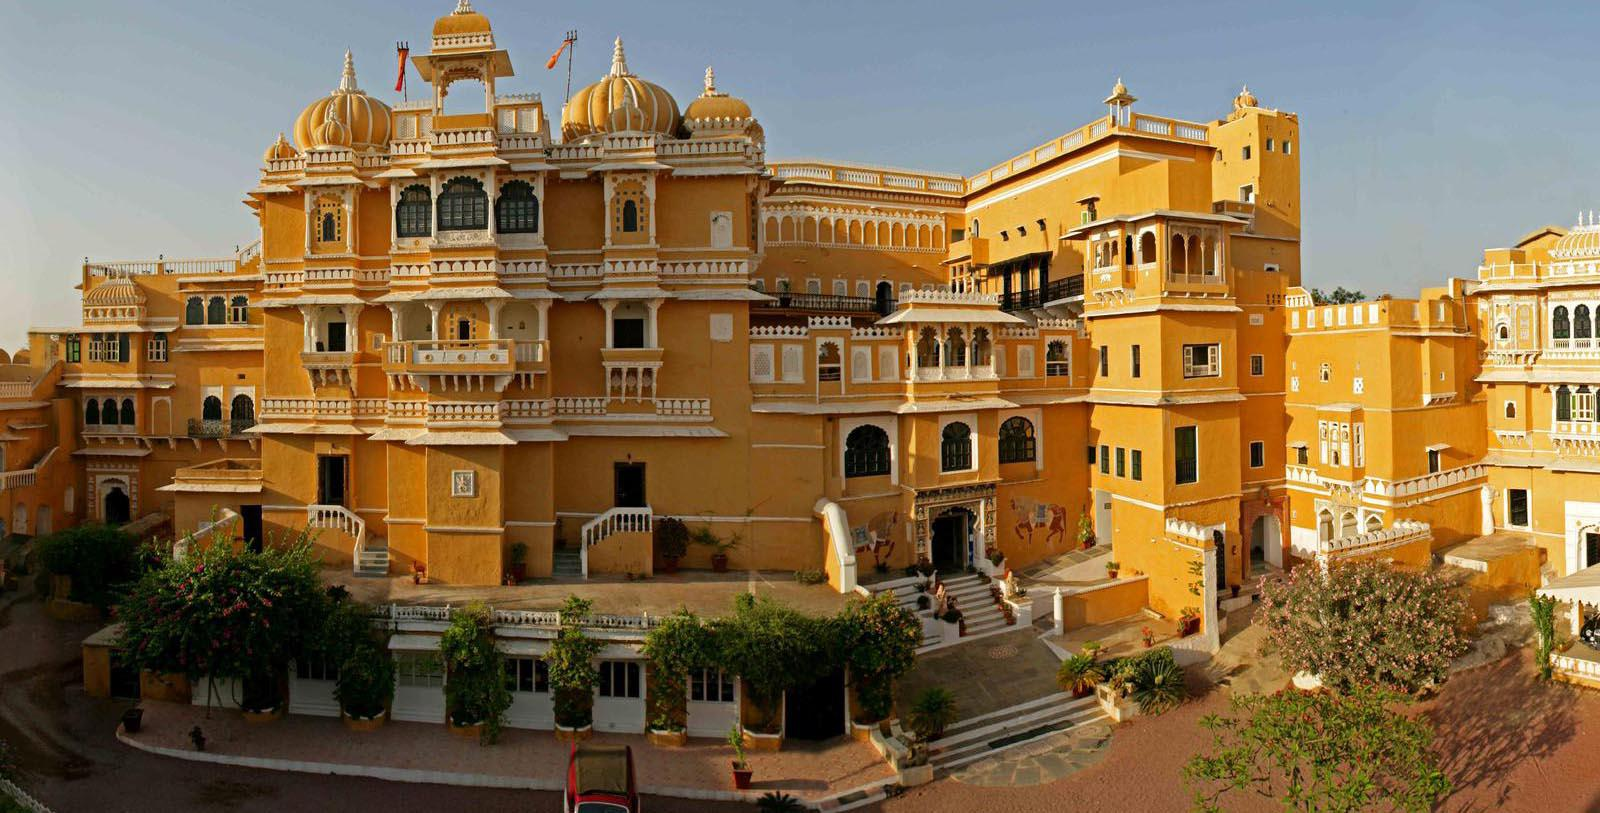 Image of hotel exterior Deogarh Mahal, 1670, Member of Historic Hotels Worldwide, in Deogarh, India, Special Offers, Discounted Rates, Families, Romantic Escape, Honeymoons, Anniversaries, Reunions